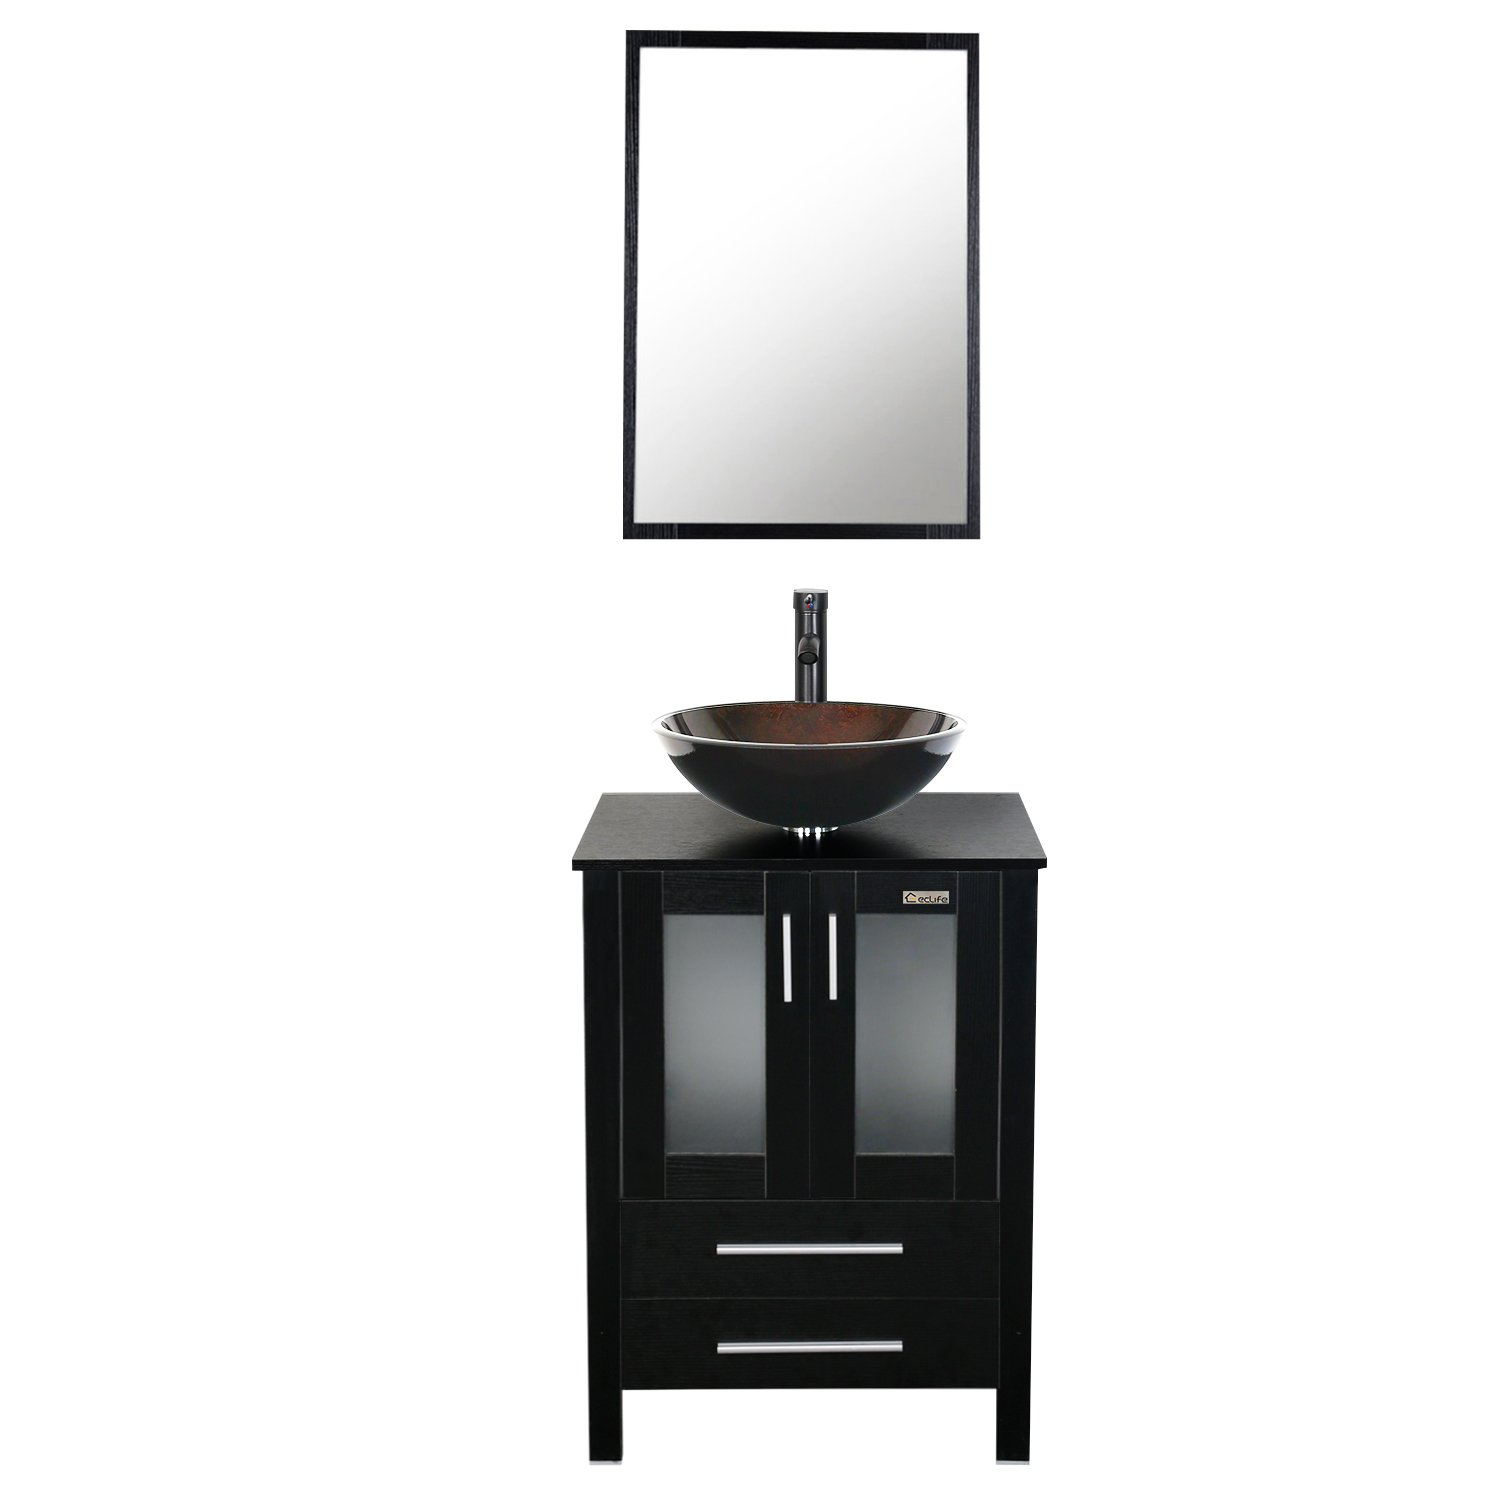 Eclife 24 inch Bathroom Vanity Combo Modern MDF Cabinet with Vanity Mirror Tempered Glass Counter Top Vessel Sink with 1.5 GPM Faucet and Pop Up Drain A1B2 by Eclife